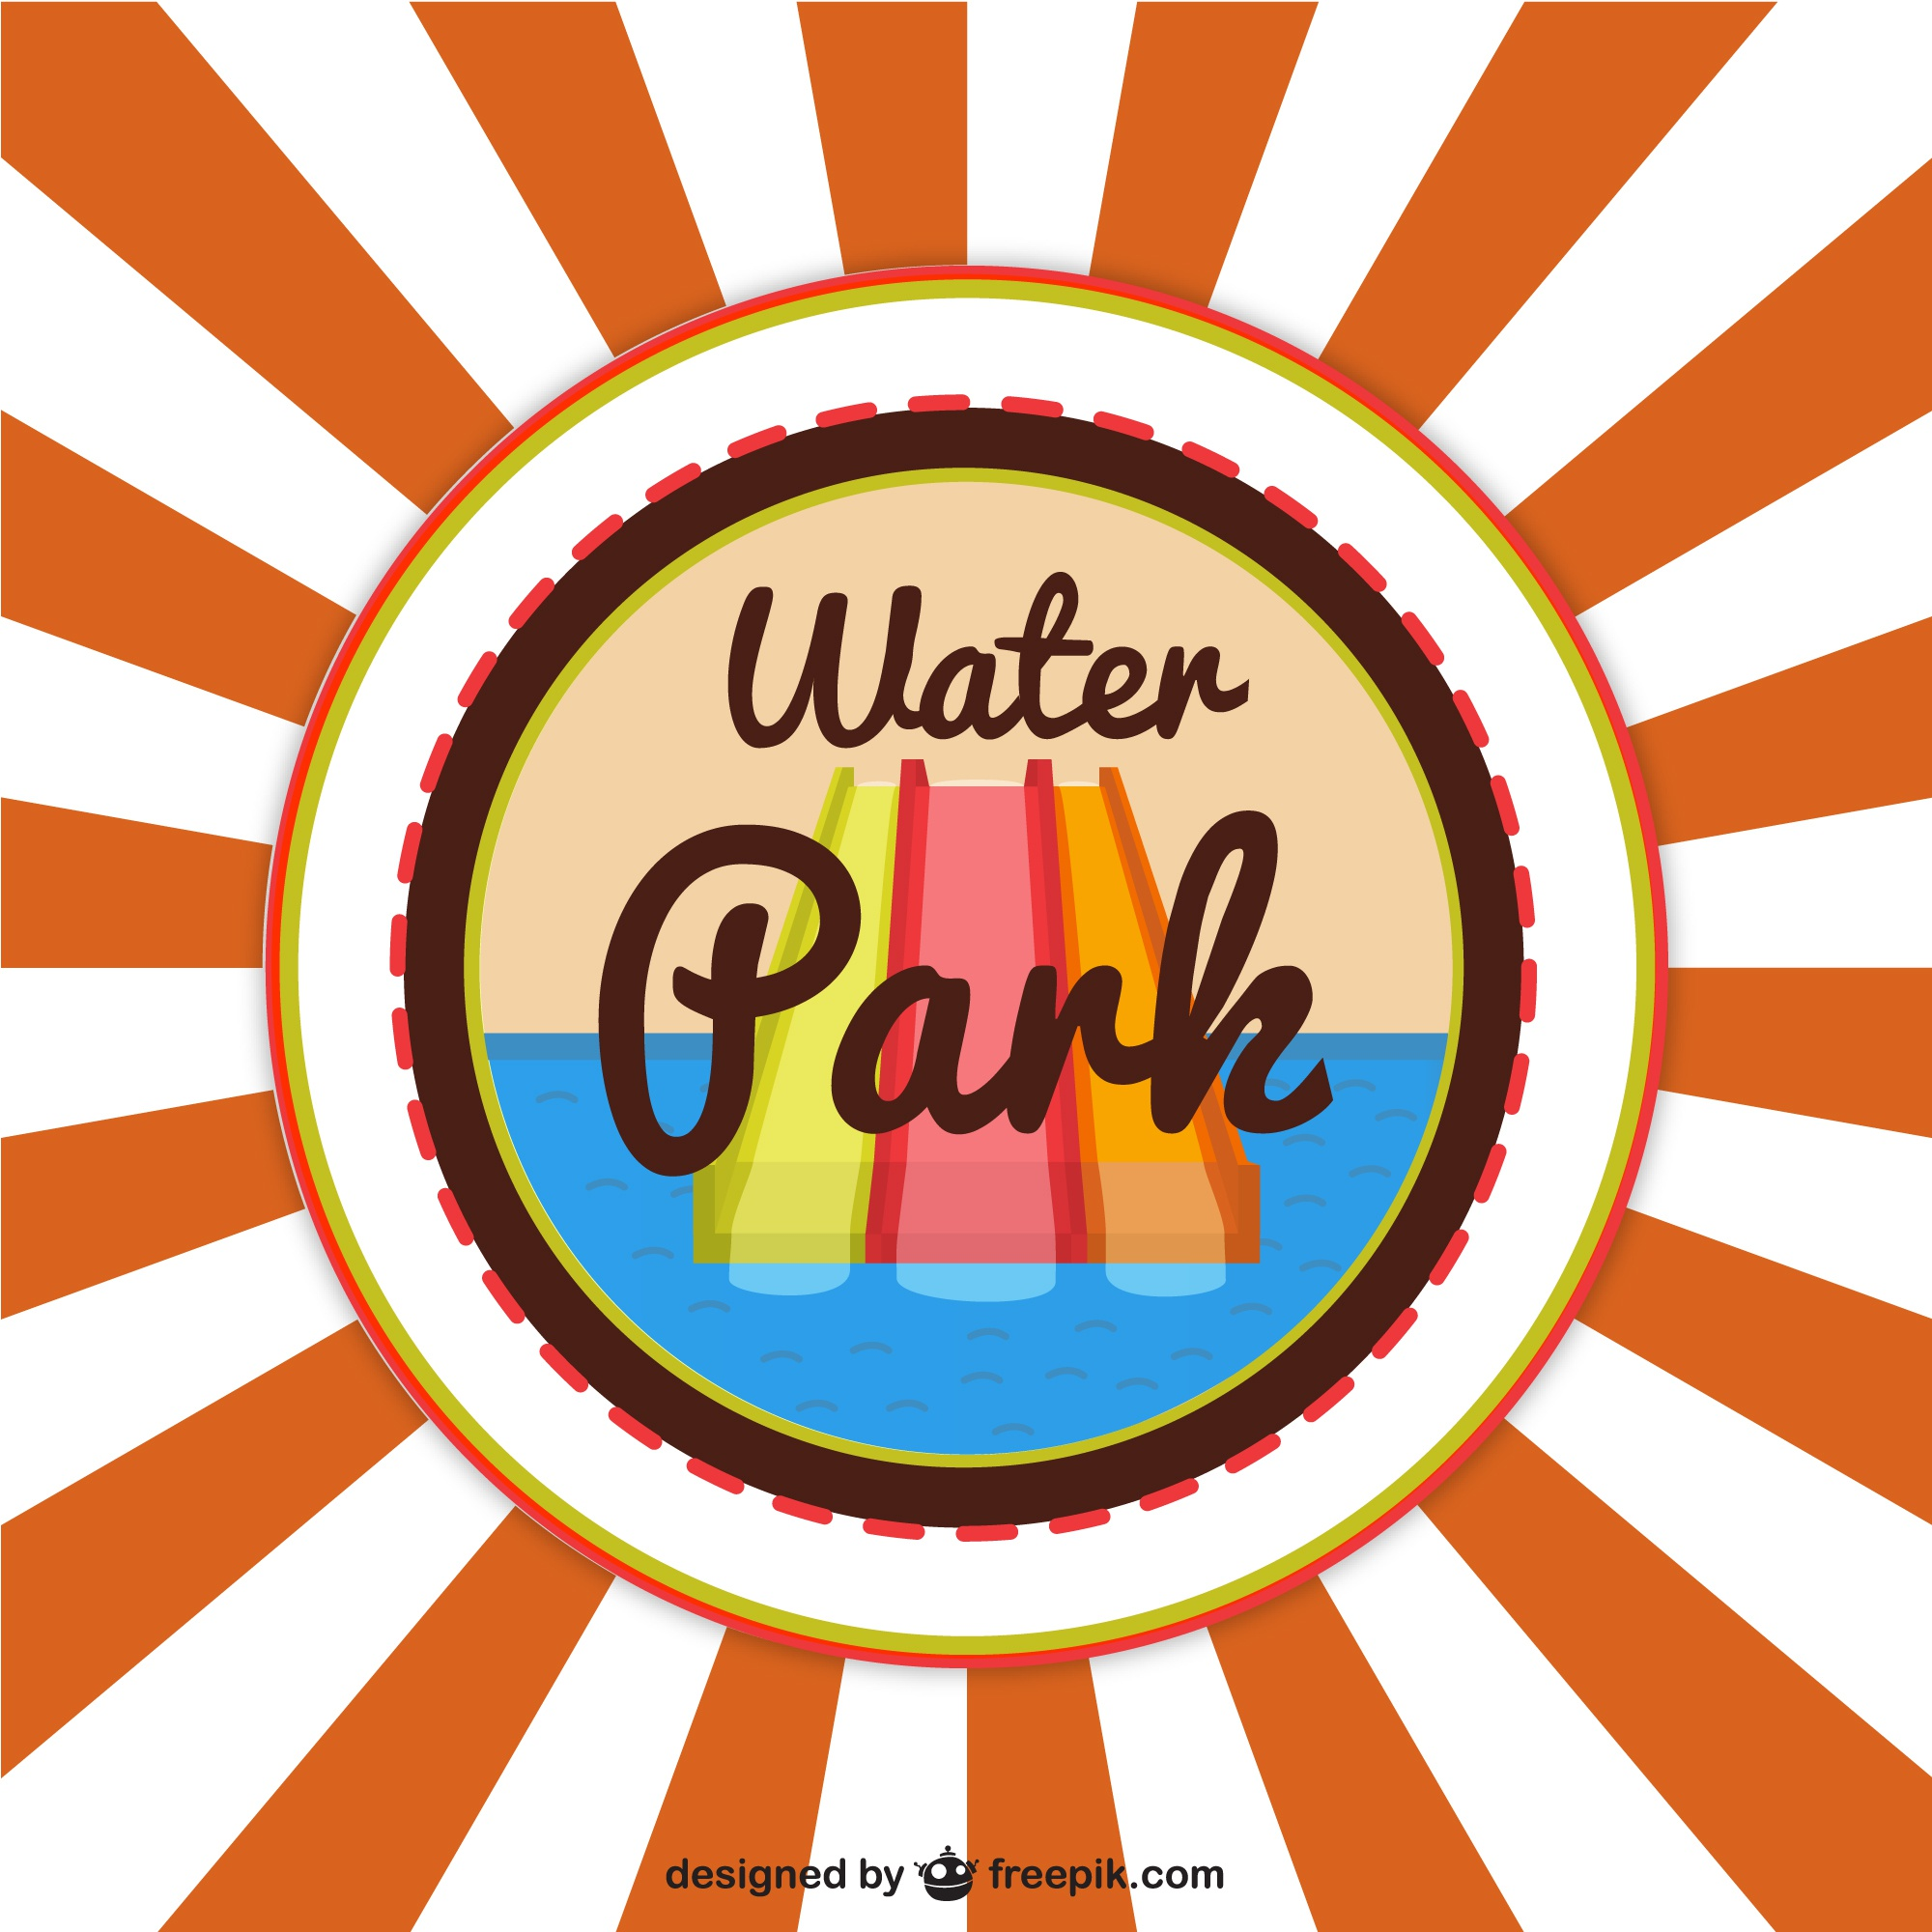 Waterpark vector background